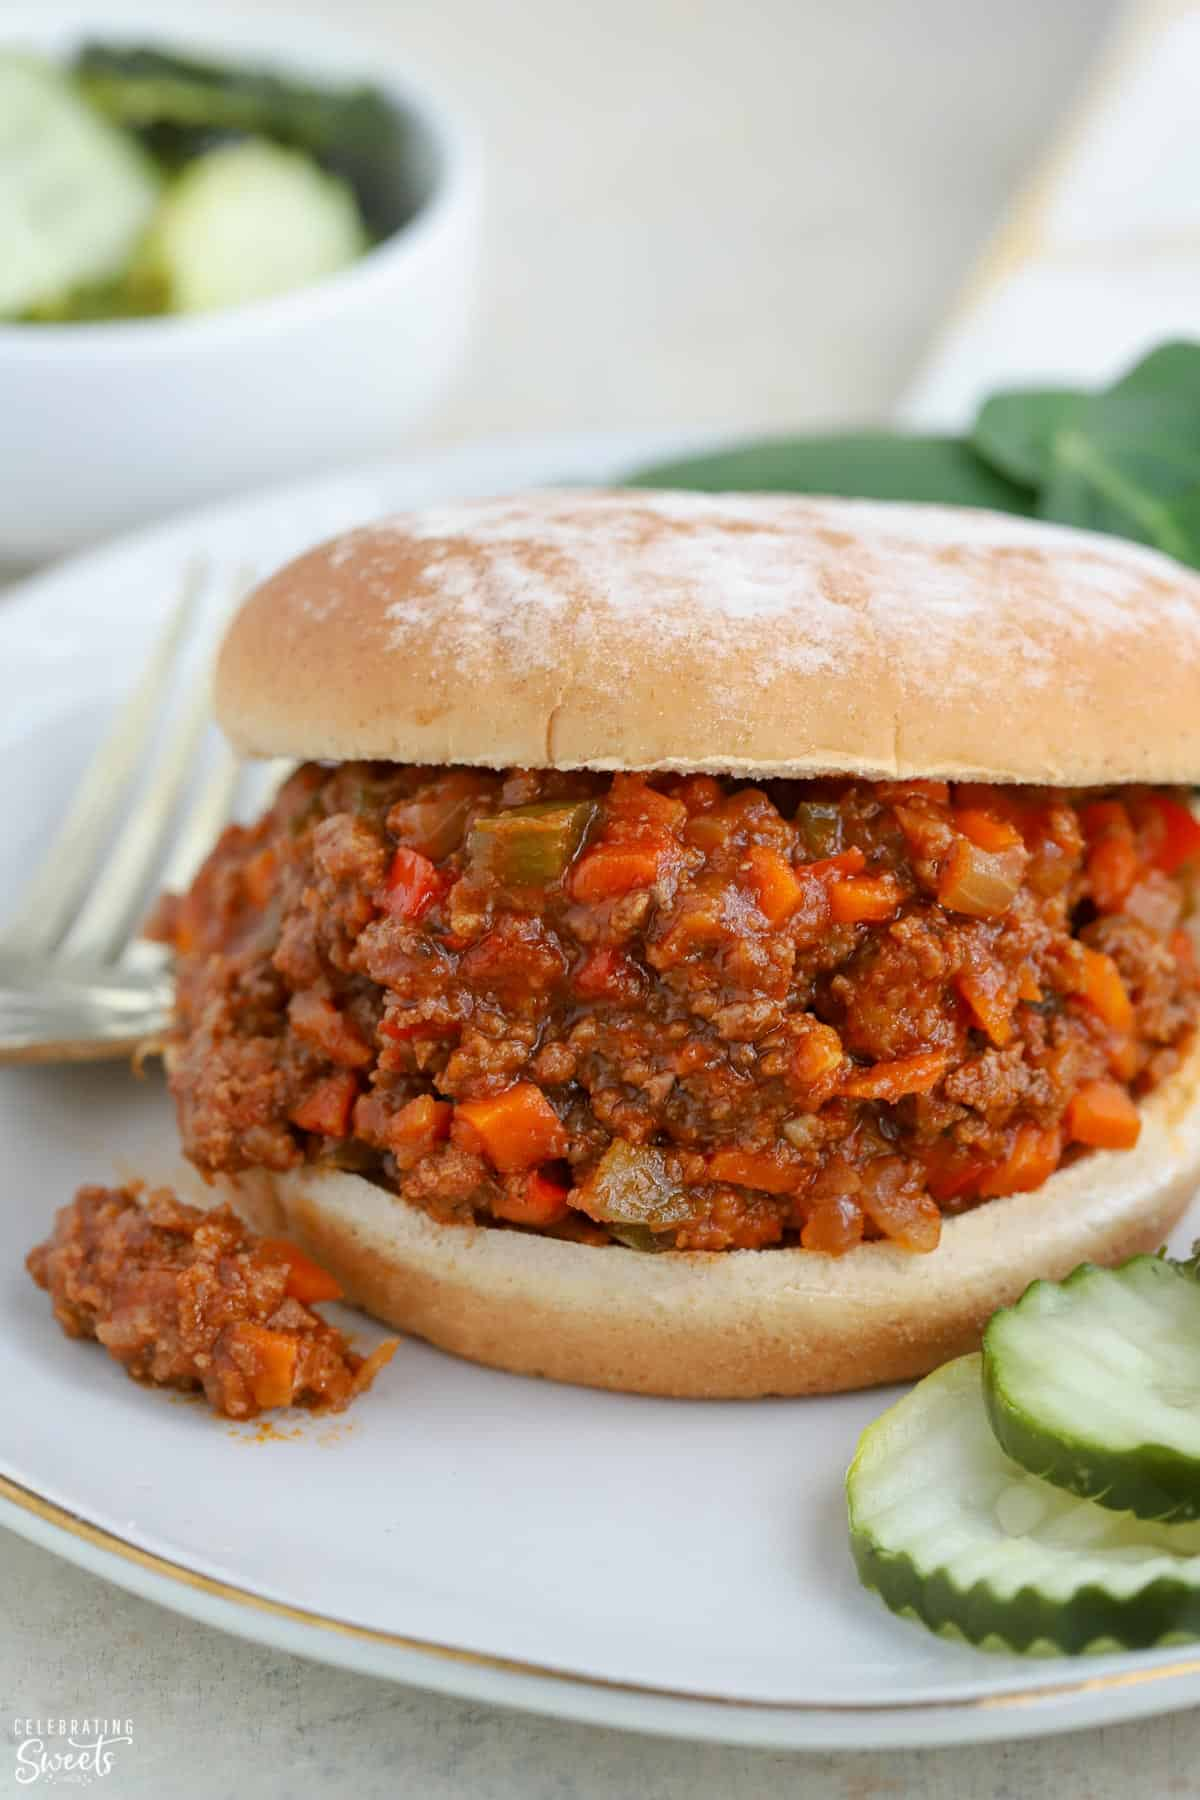 Sloppy joe sandwich on a plate with pickles